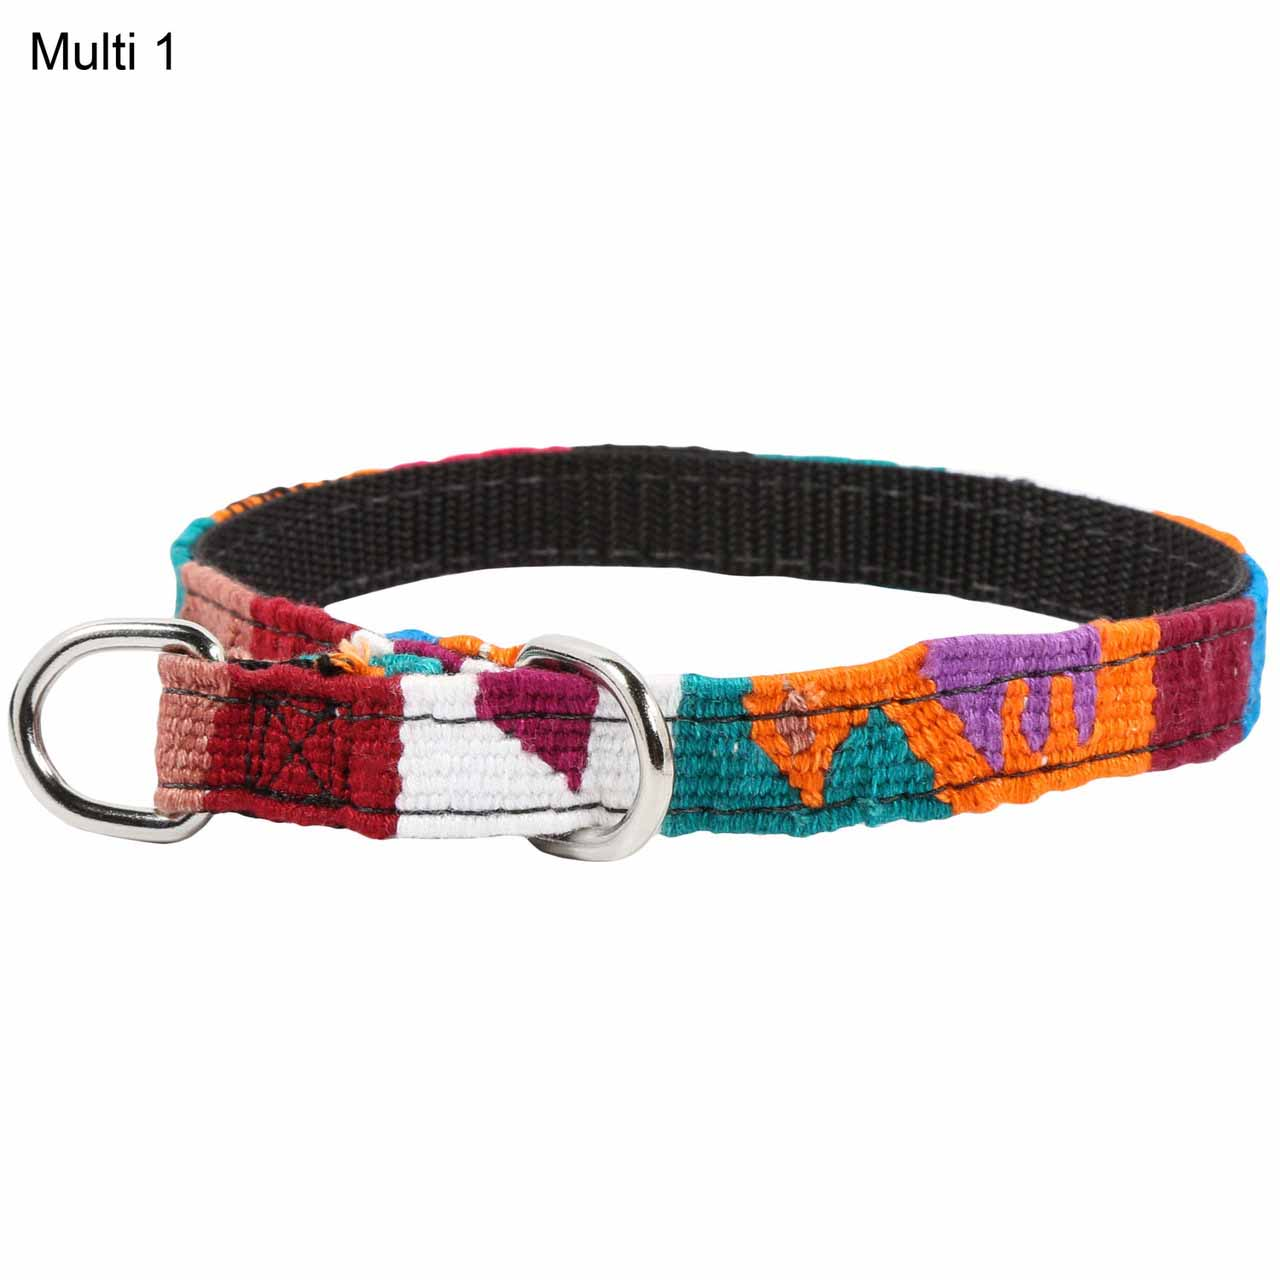 MAYA Small Slip Collar for Puppies & Small Dogs - Multi 1